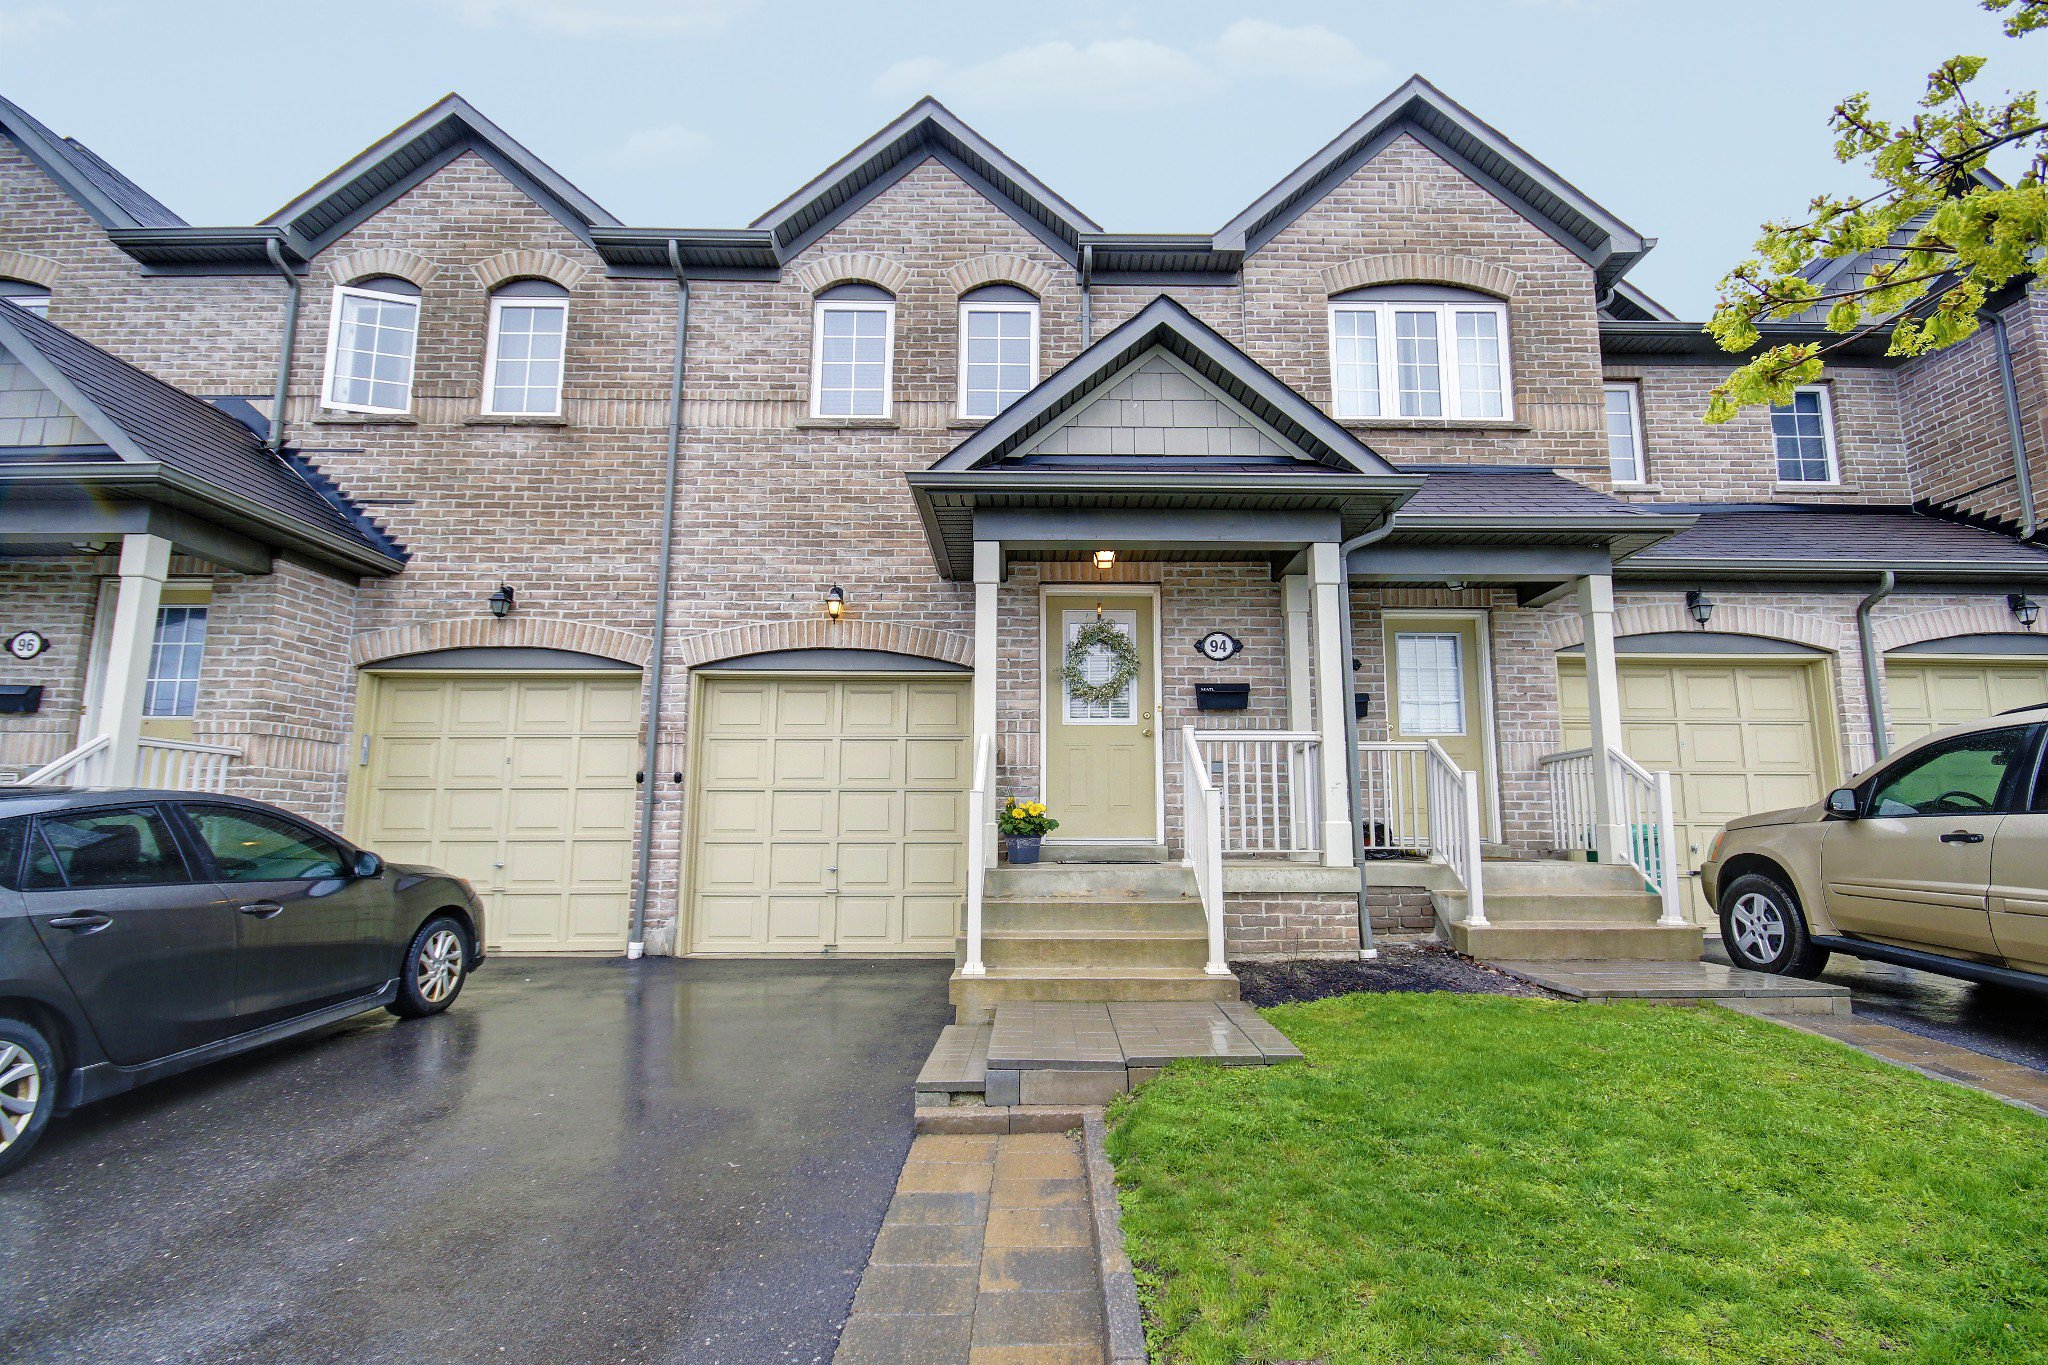 Main Photo: 94 Joymar Drive in Mississauga: Streetsville Freehold for sale : MLS®# W3788254